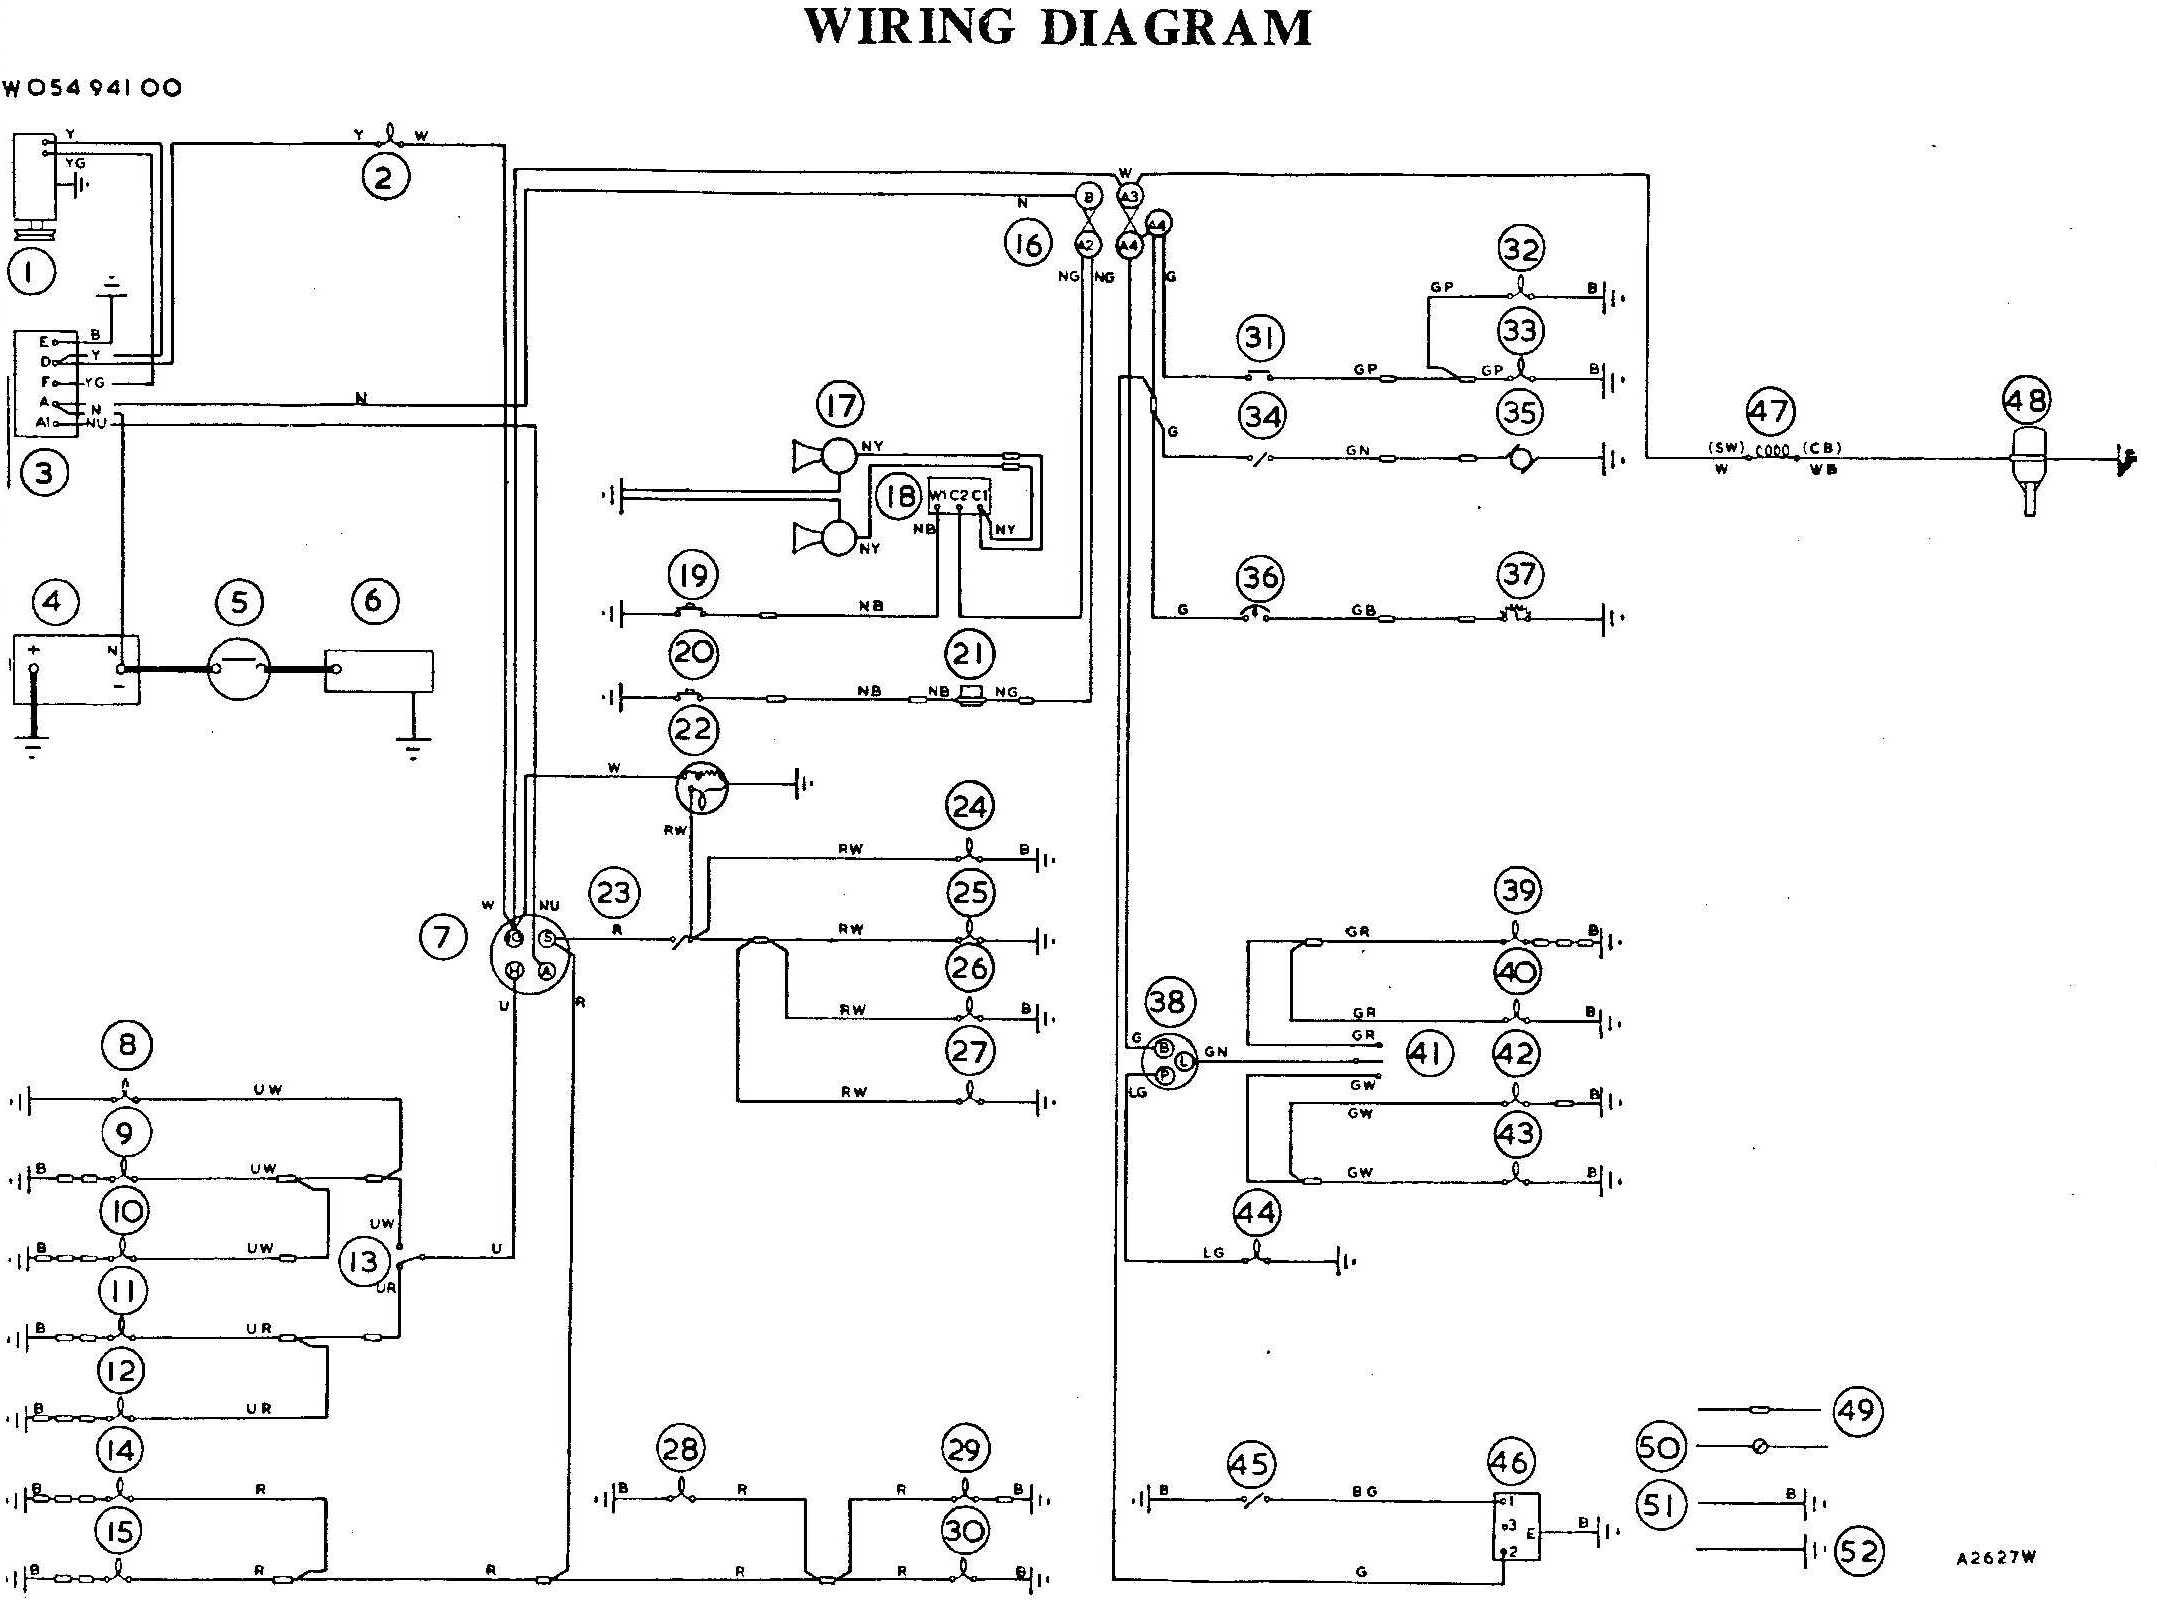 Wiring Diagram For A Detached Garage : Detached garage subpanel wiring diagrams get free image